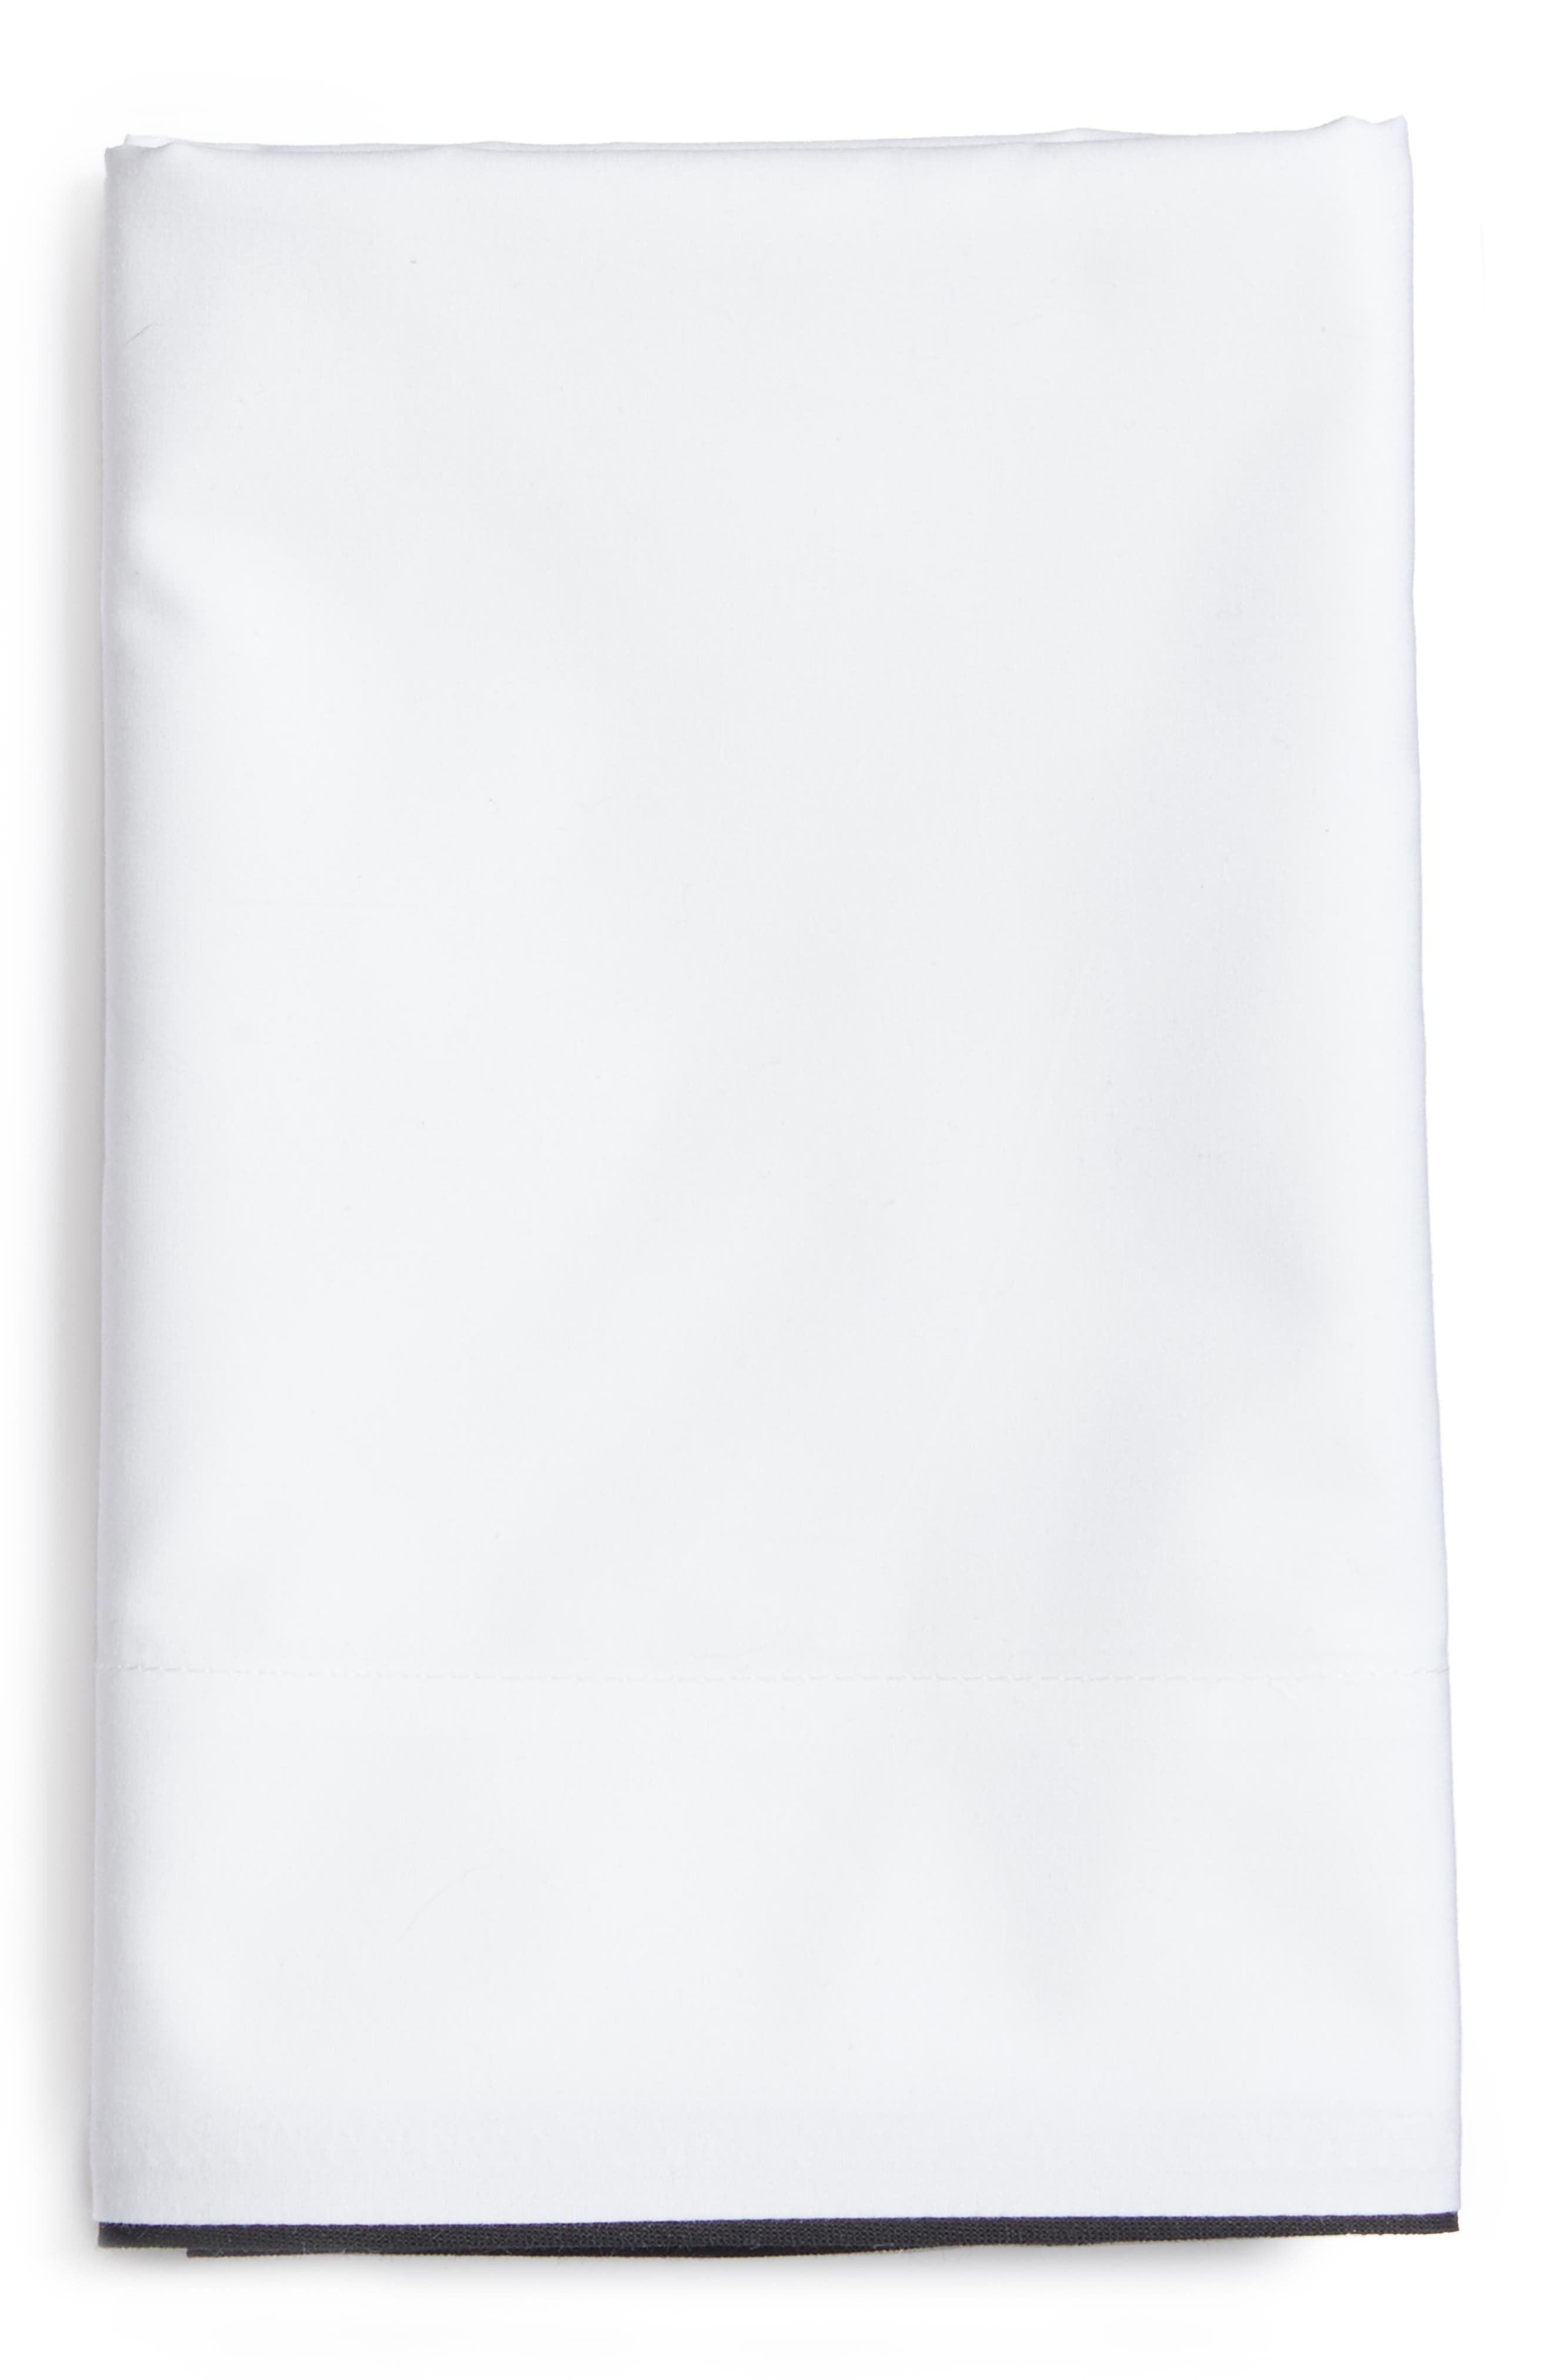 Series 1 500 Thread Count Pillowcases,                         Main,                         color, 001